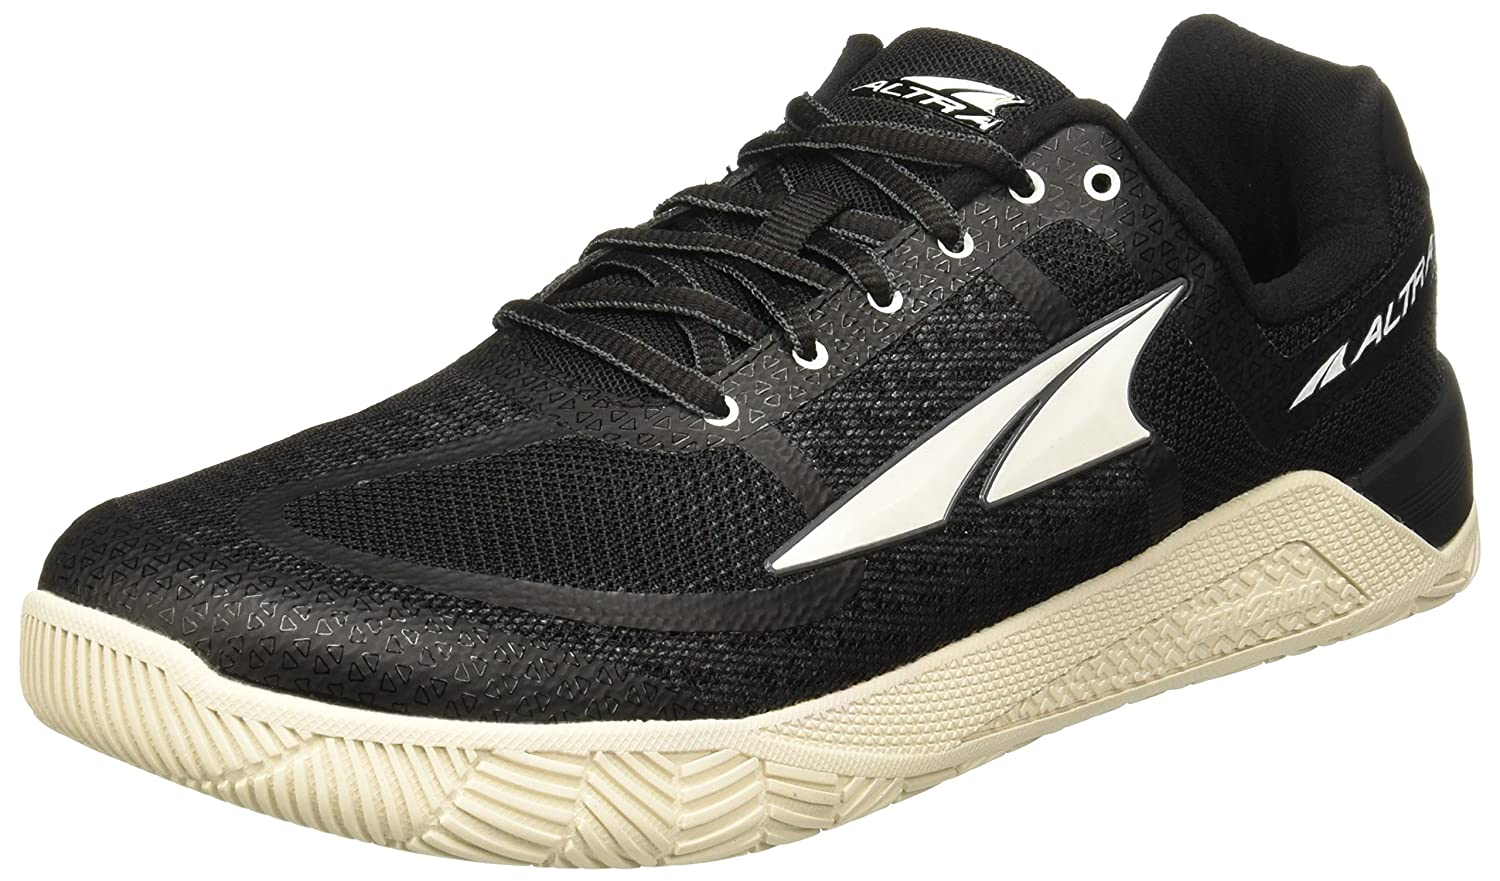 Altra HIIT XT Men's Cross-Training Shoe B01MY0QKGD 15 D(M) US|Black